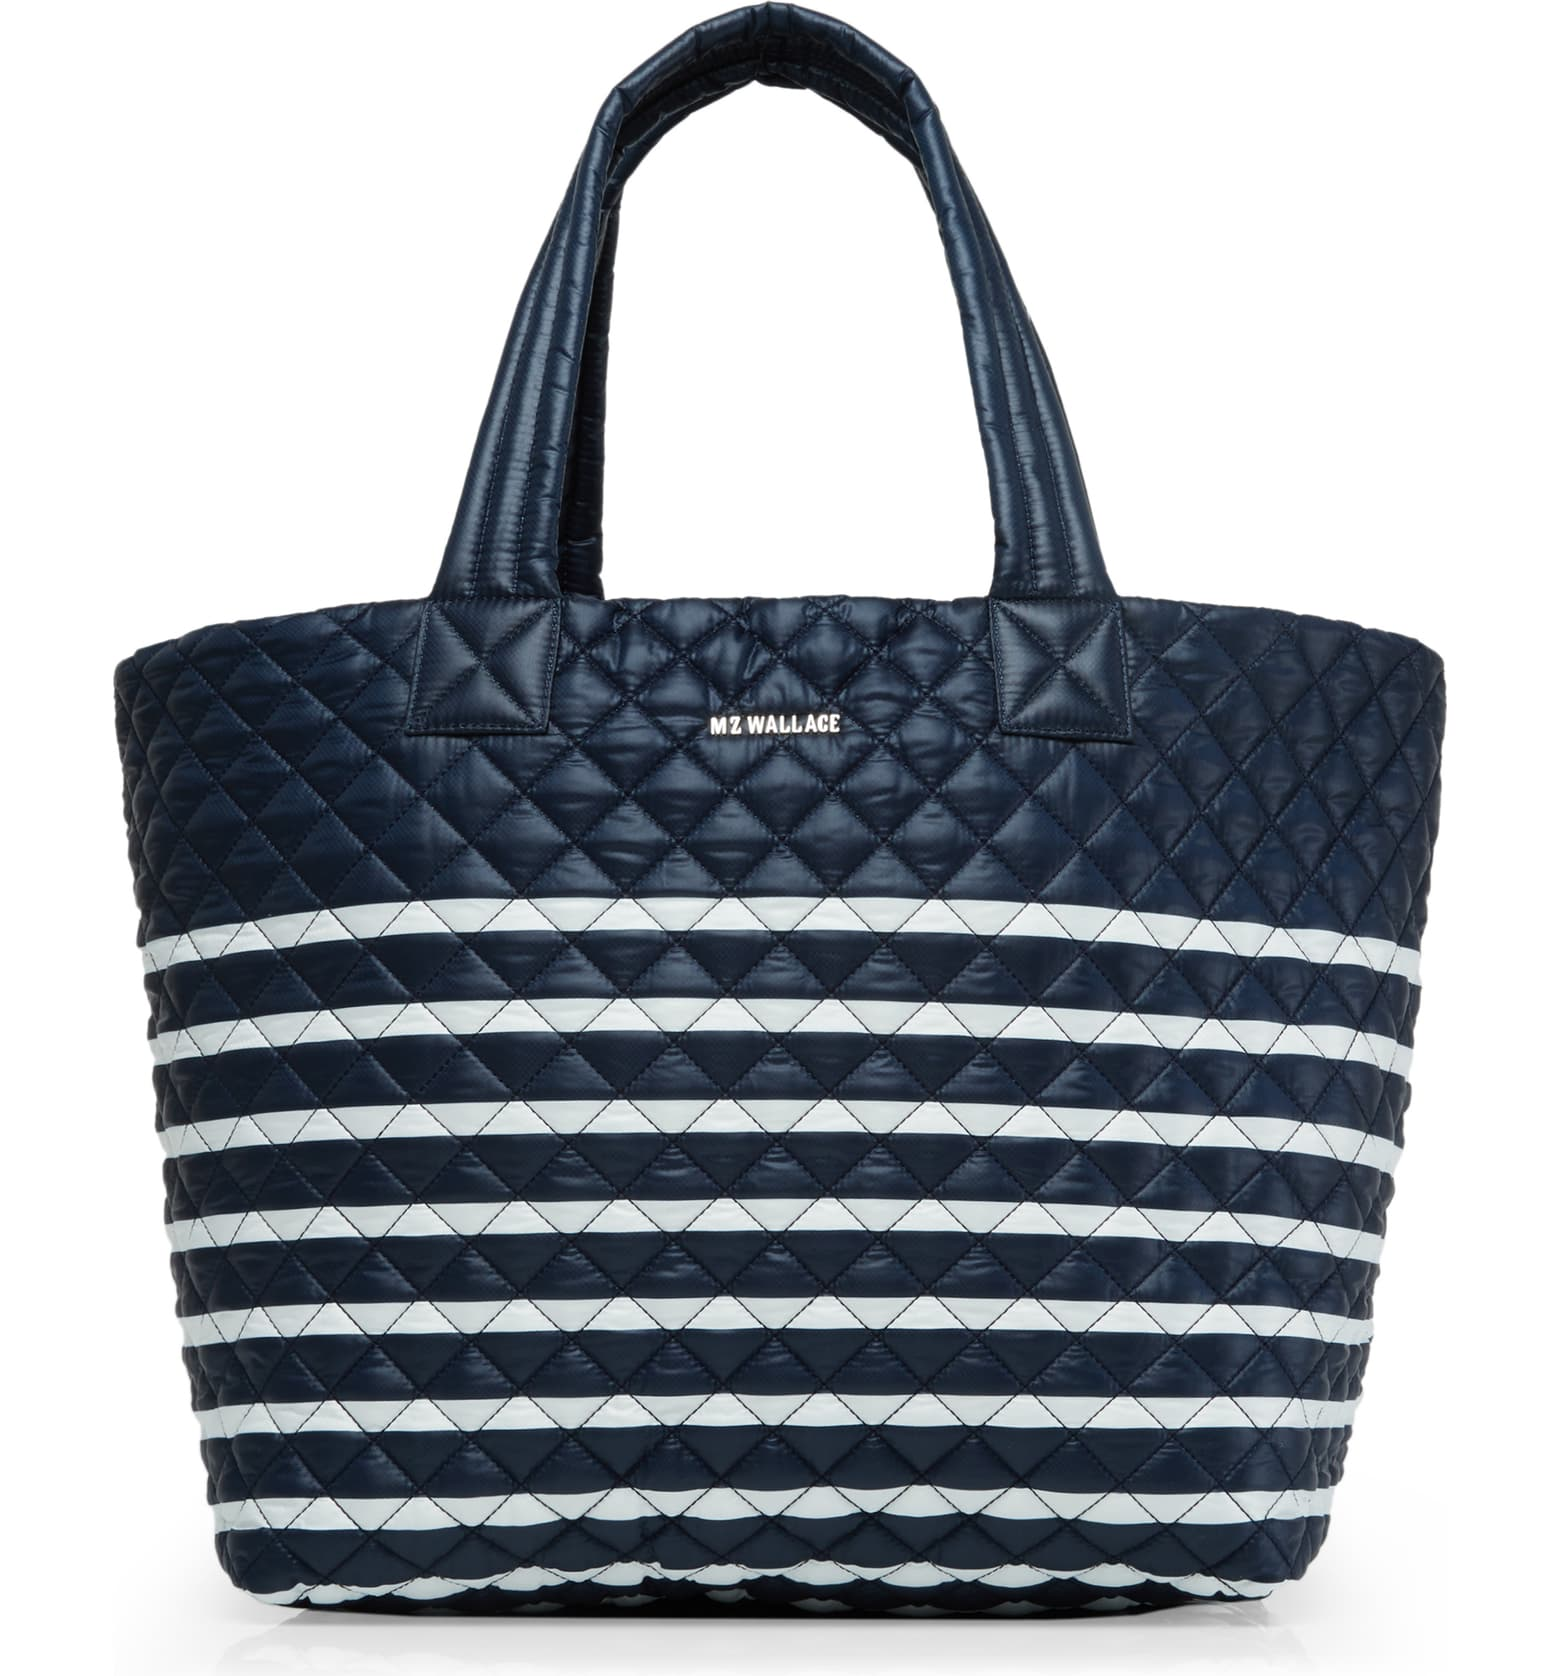 infant products - mz wallace tote